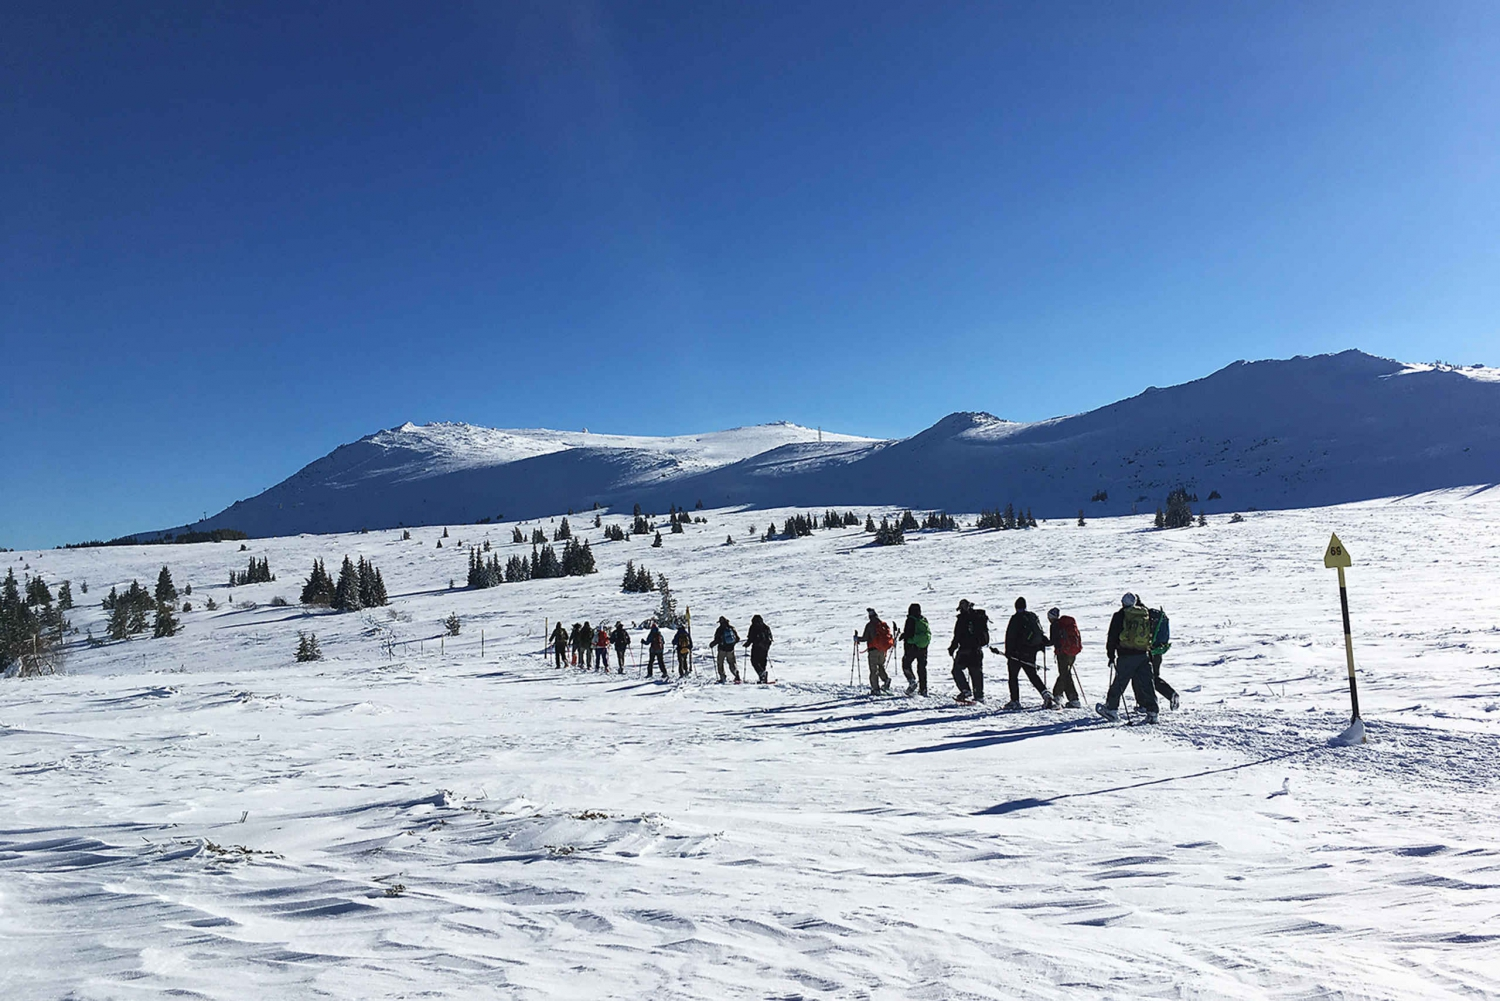 Sofia: Black Peak-Vitosha Mountain Snowshoeing Day Trip